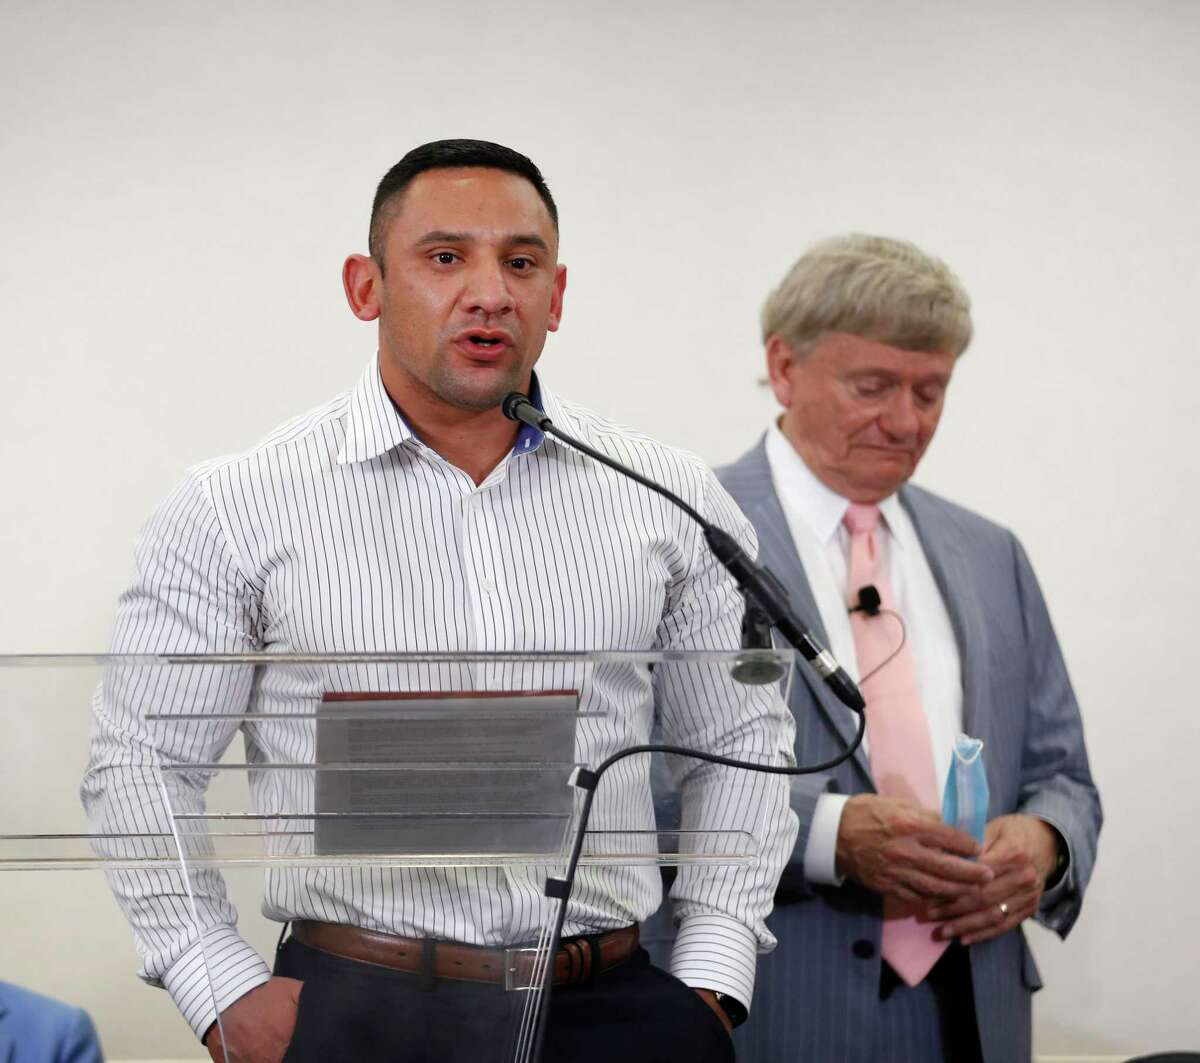 Then Houston Police officer Felipe Gallegos speaks as attorney Rusty Hardin listens during a press conference at Hilton Americas, in Houston, Tuesday, Jan. 26, 2021.